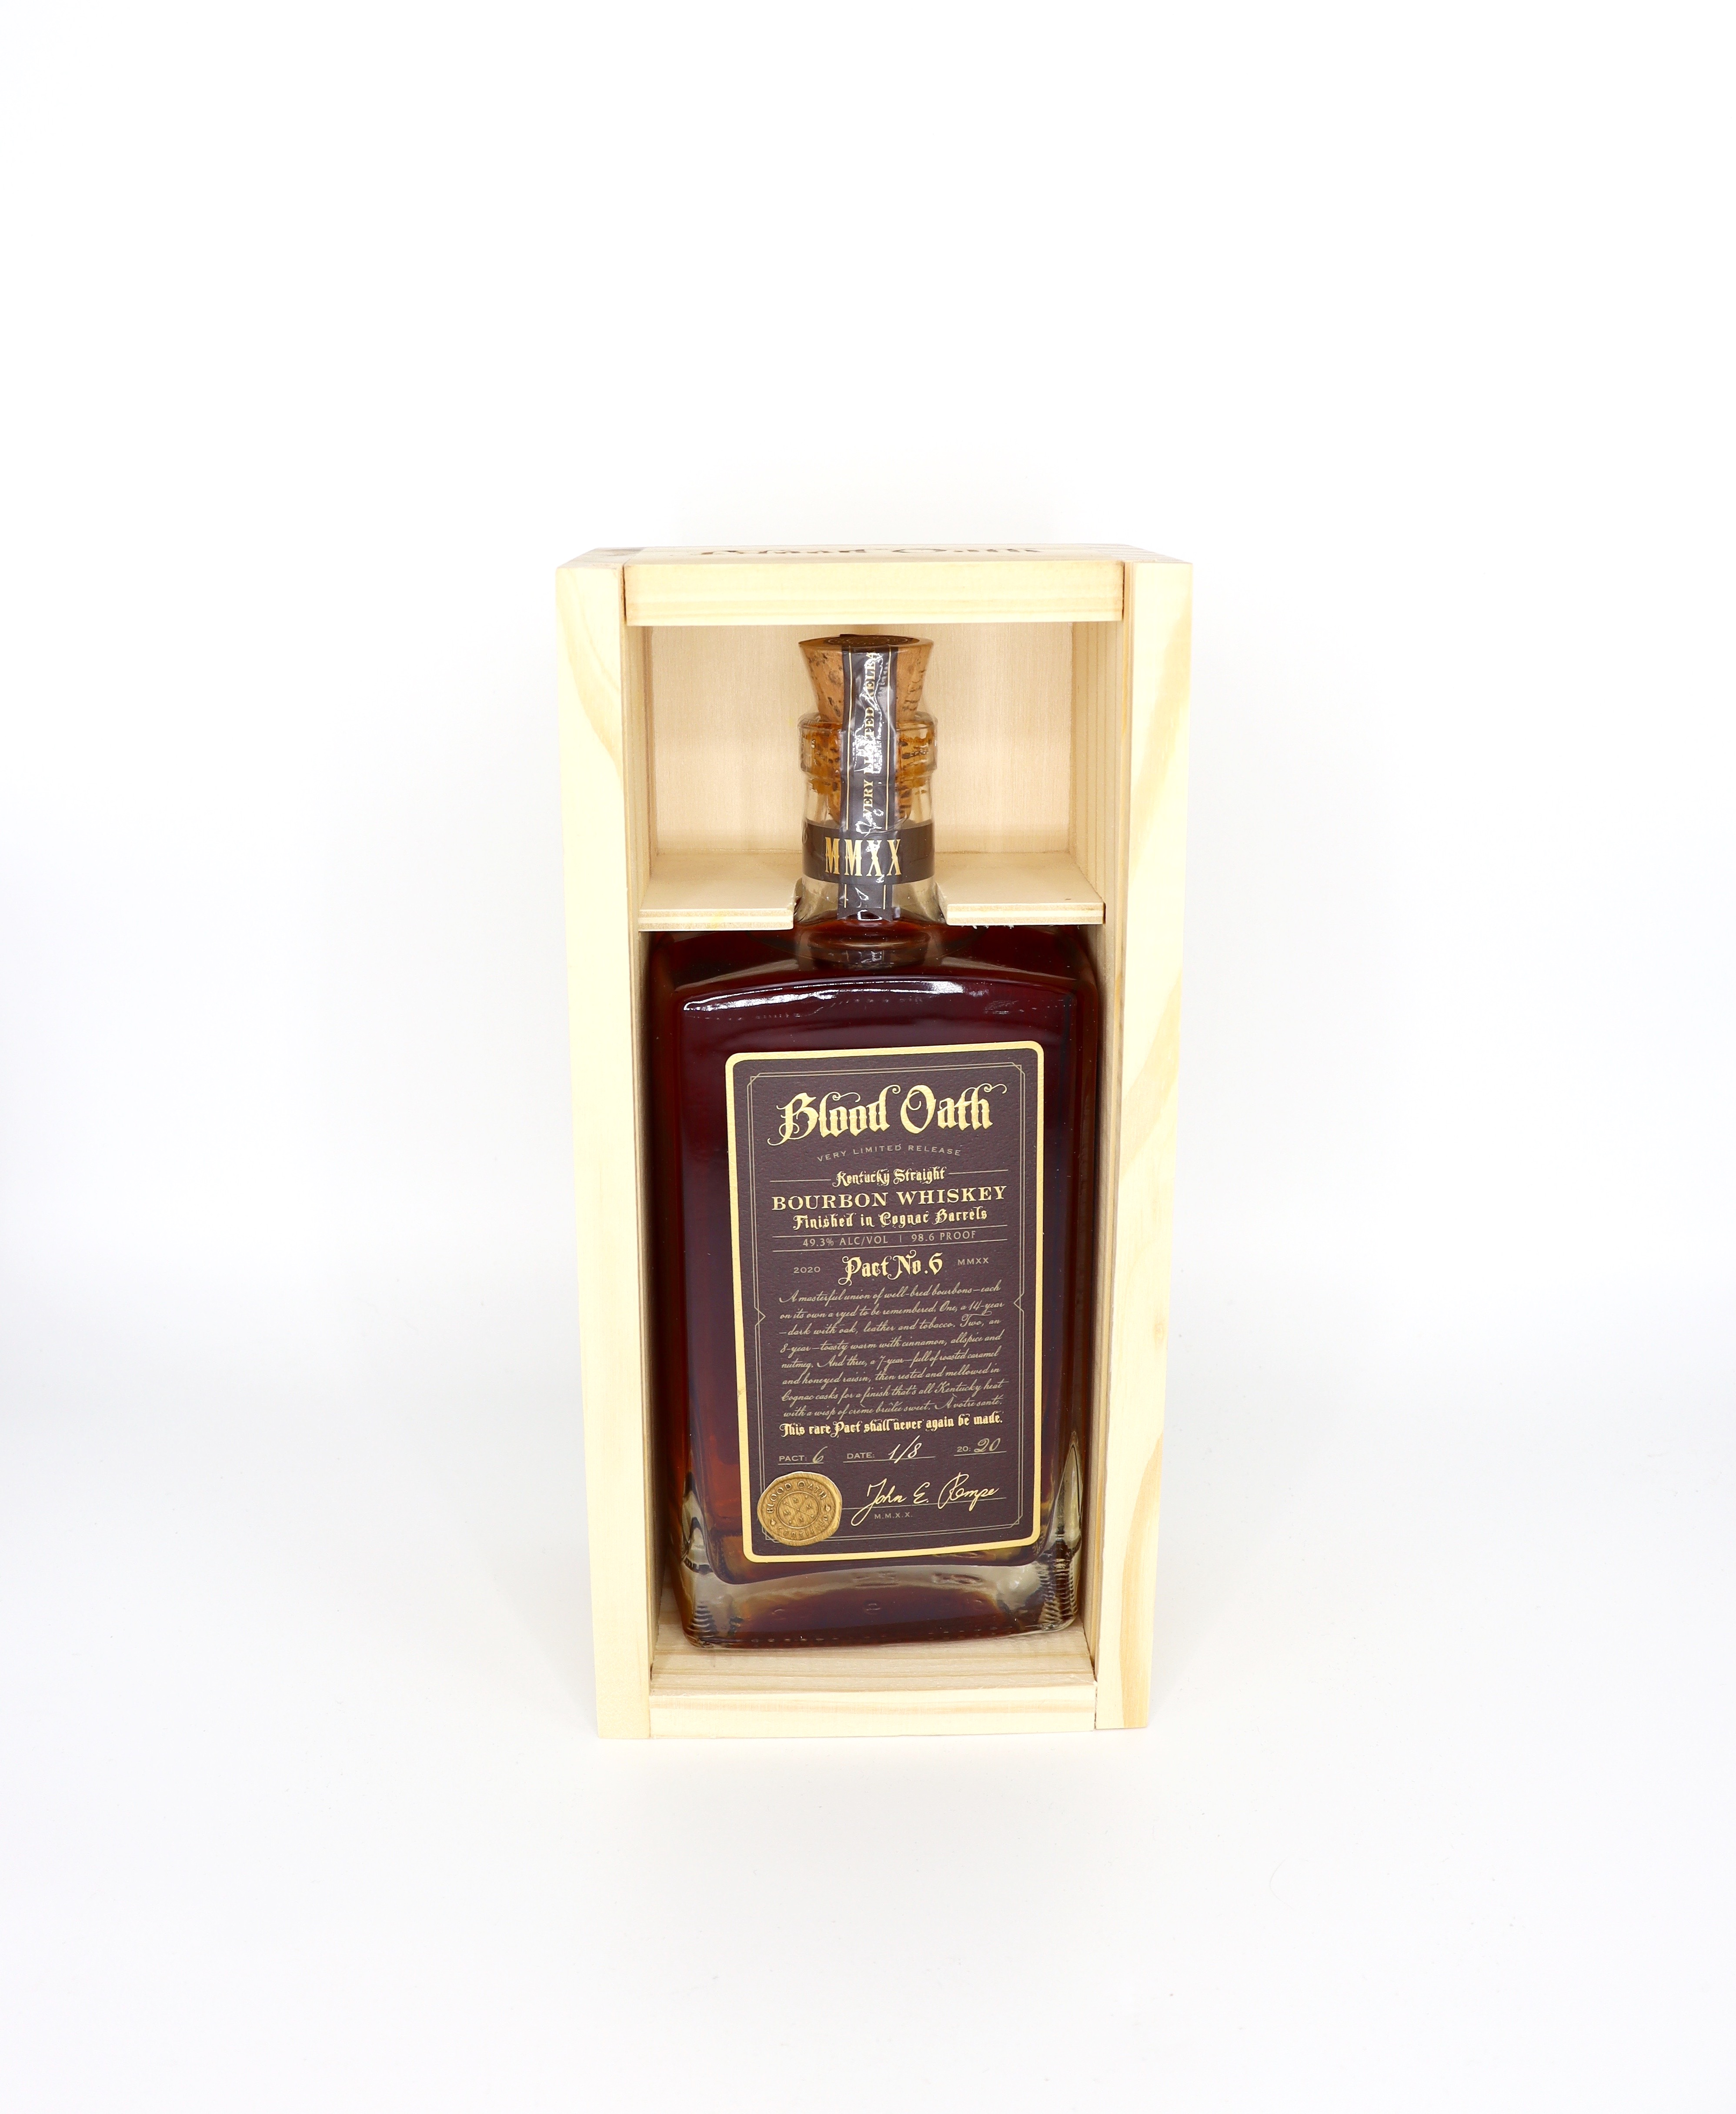 Blood Oath Pact No 6 Bourbon Finished in Cognac Casks 98.6 proof